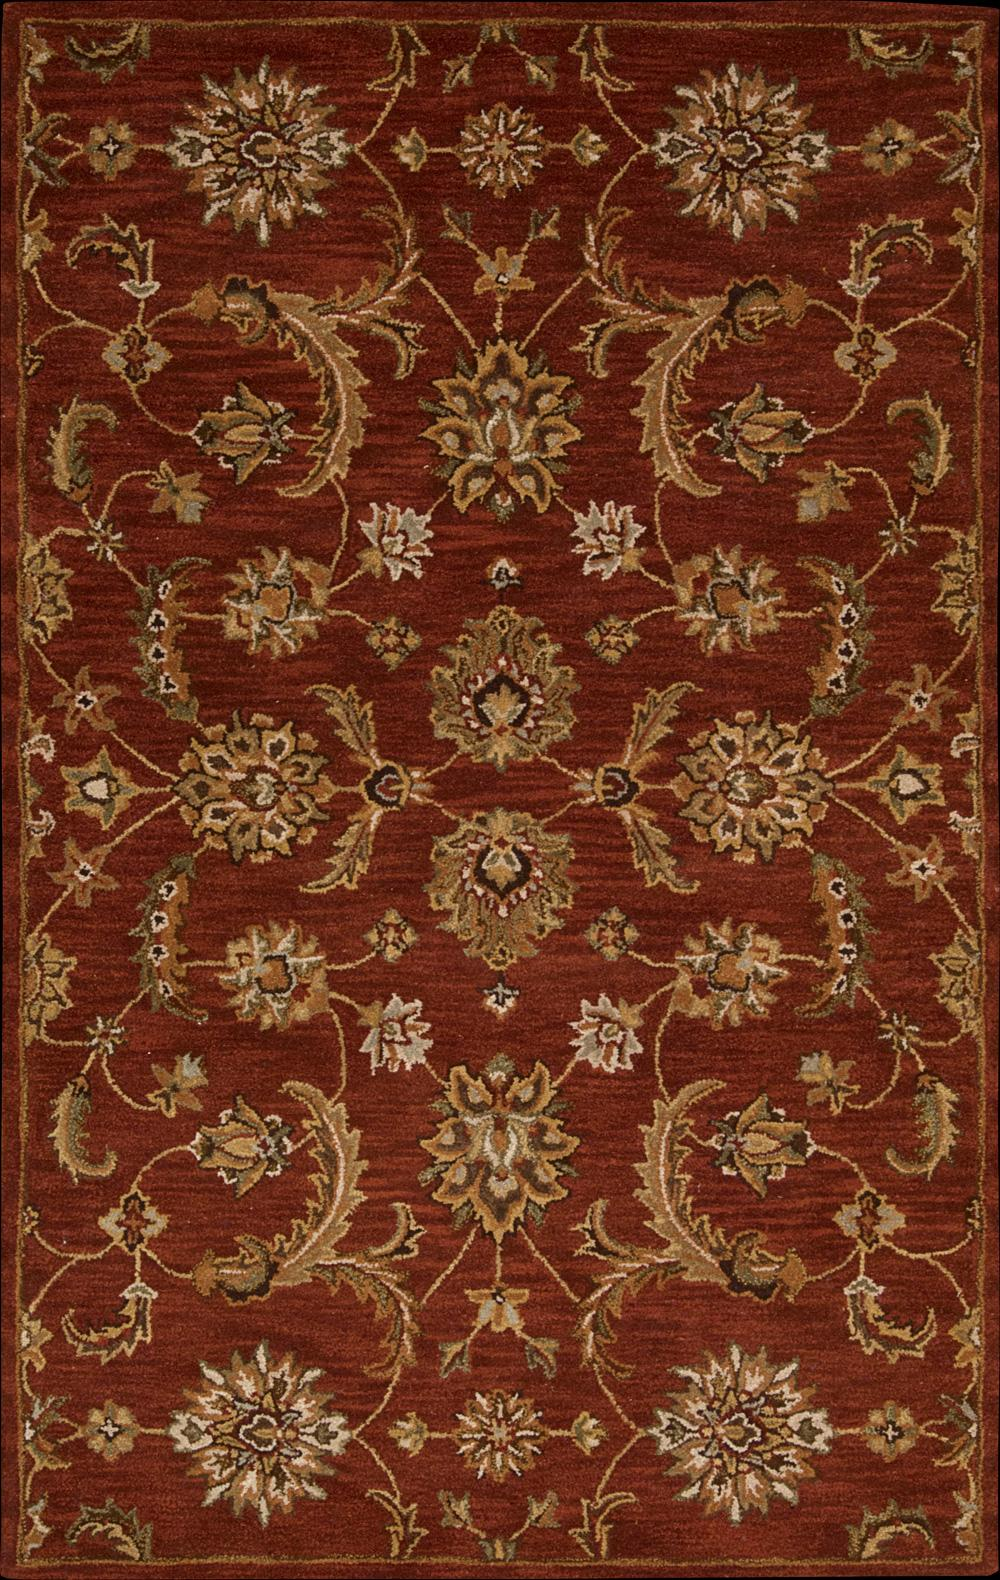 Nourison India House Area Rug 5' x 8' - Item Number: 10298